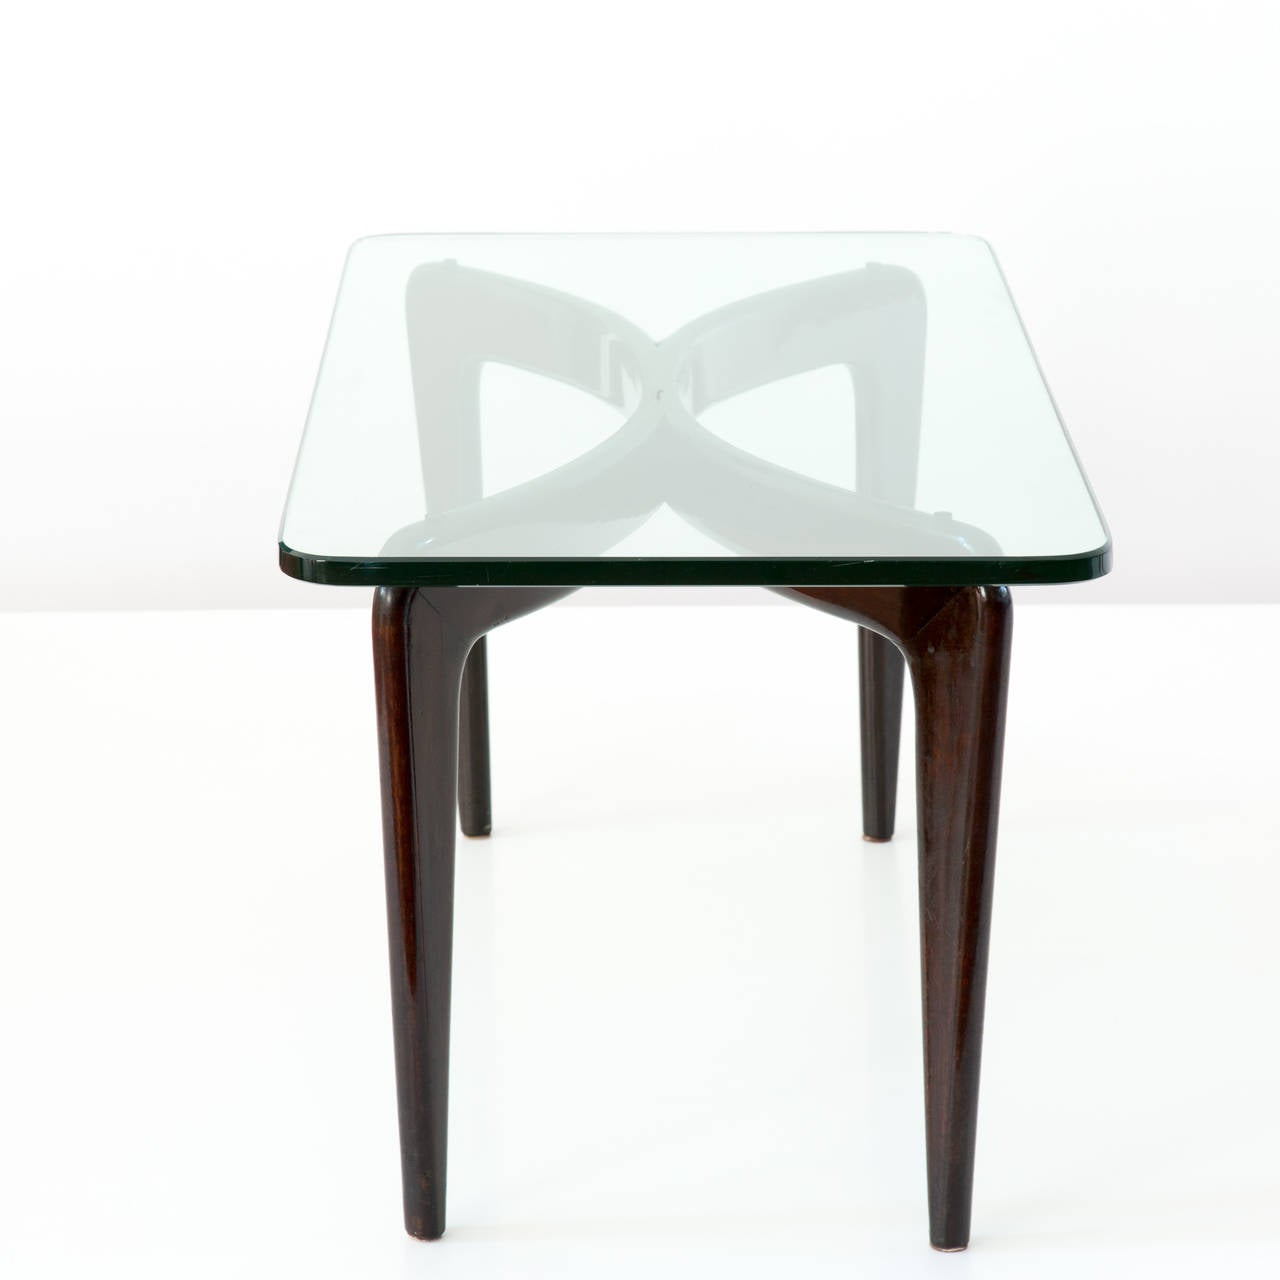 gio ponti coffee table by fontana arte 1936 for sale at